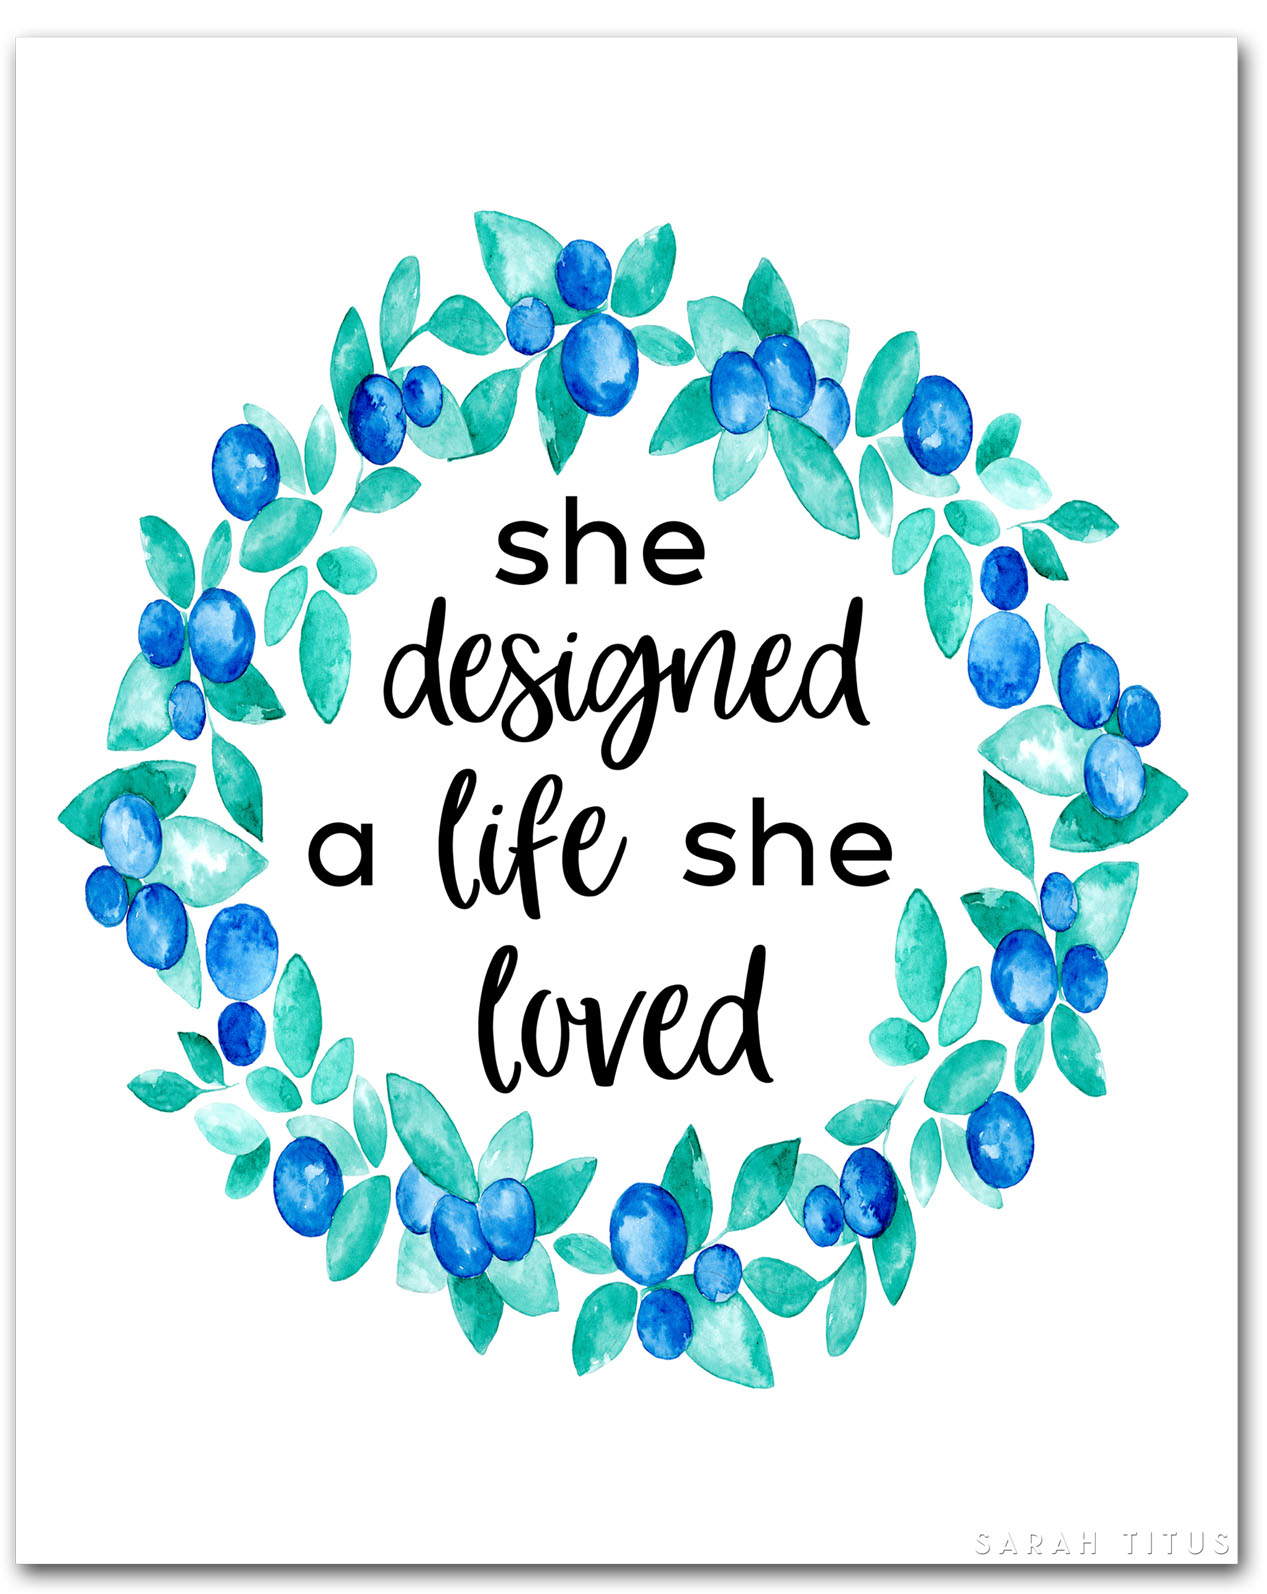 """If you want something, go for it. If you have dreams, work for them.Get this """"she designed a life she loved"""" printable to remember you are in control of your own life! #shedesigned #freewallart #wallart #freeprintable #wreathwallart"""